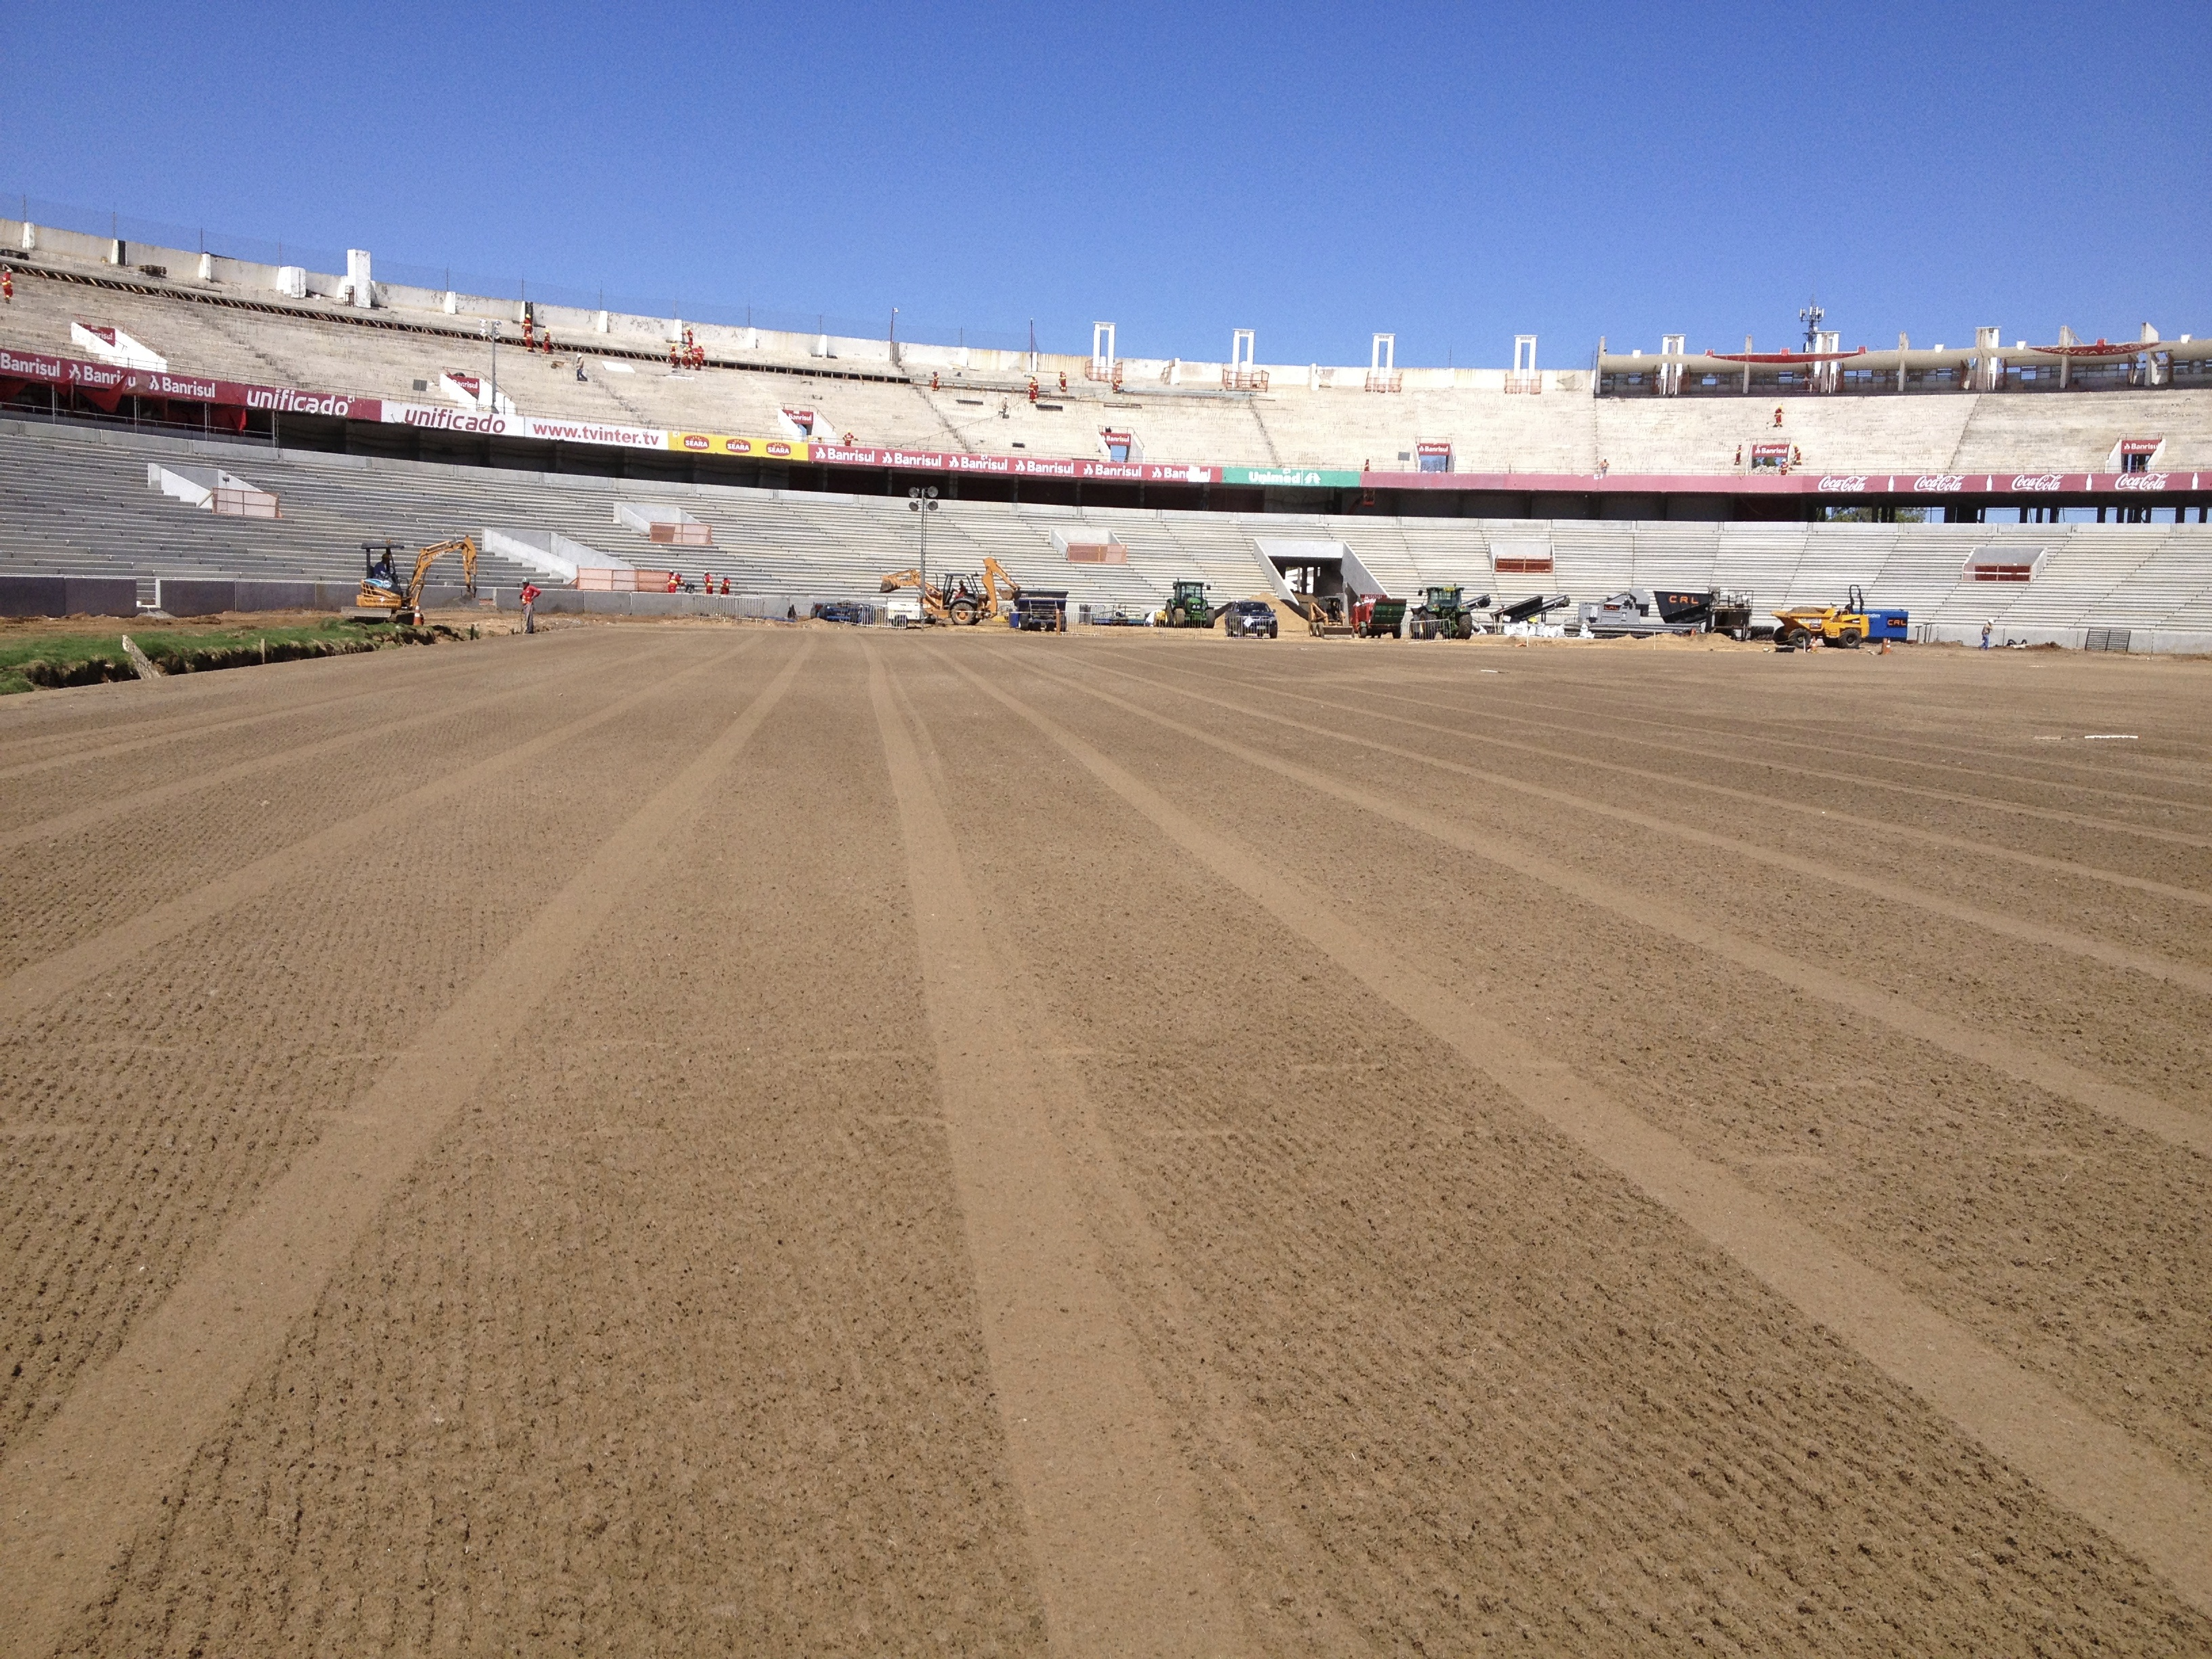 Final level of the pitch